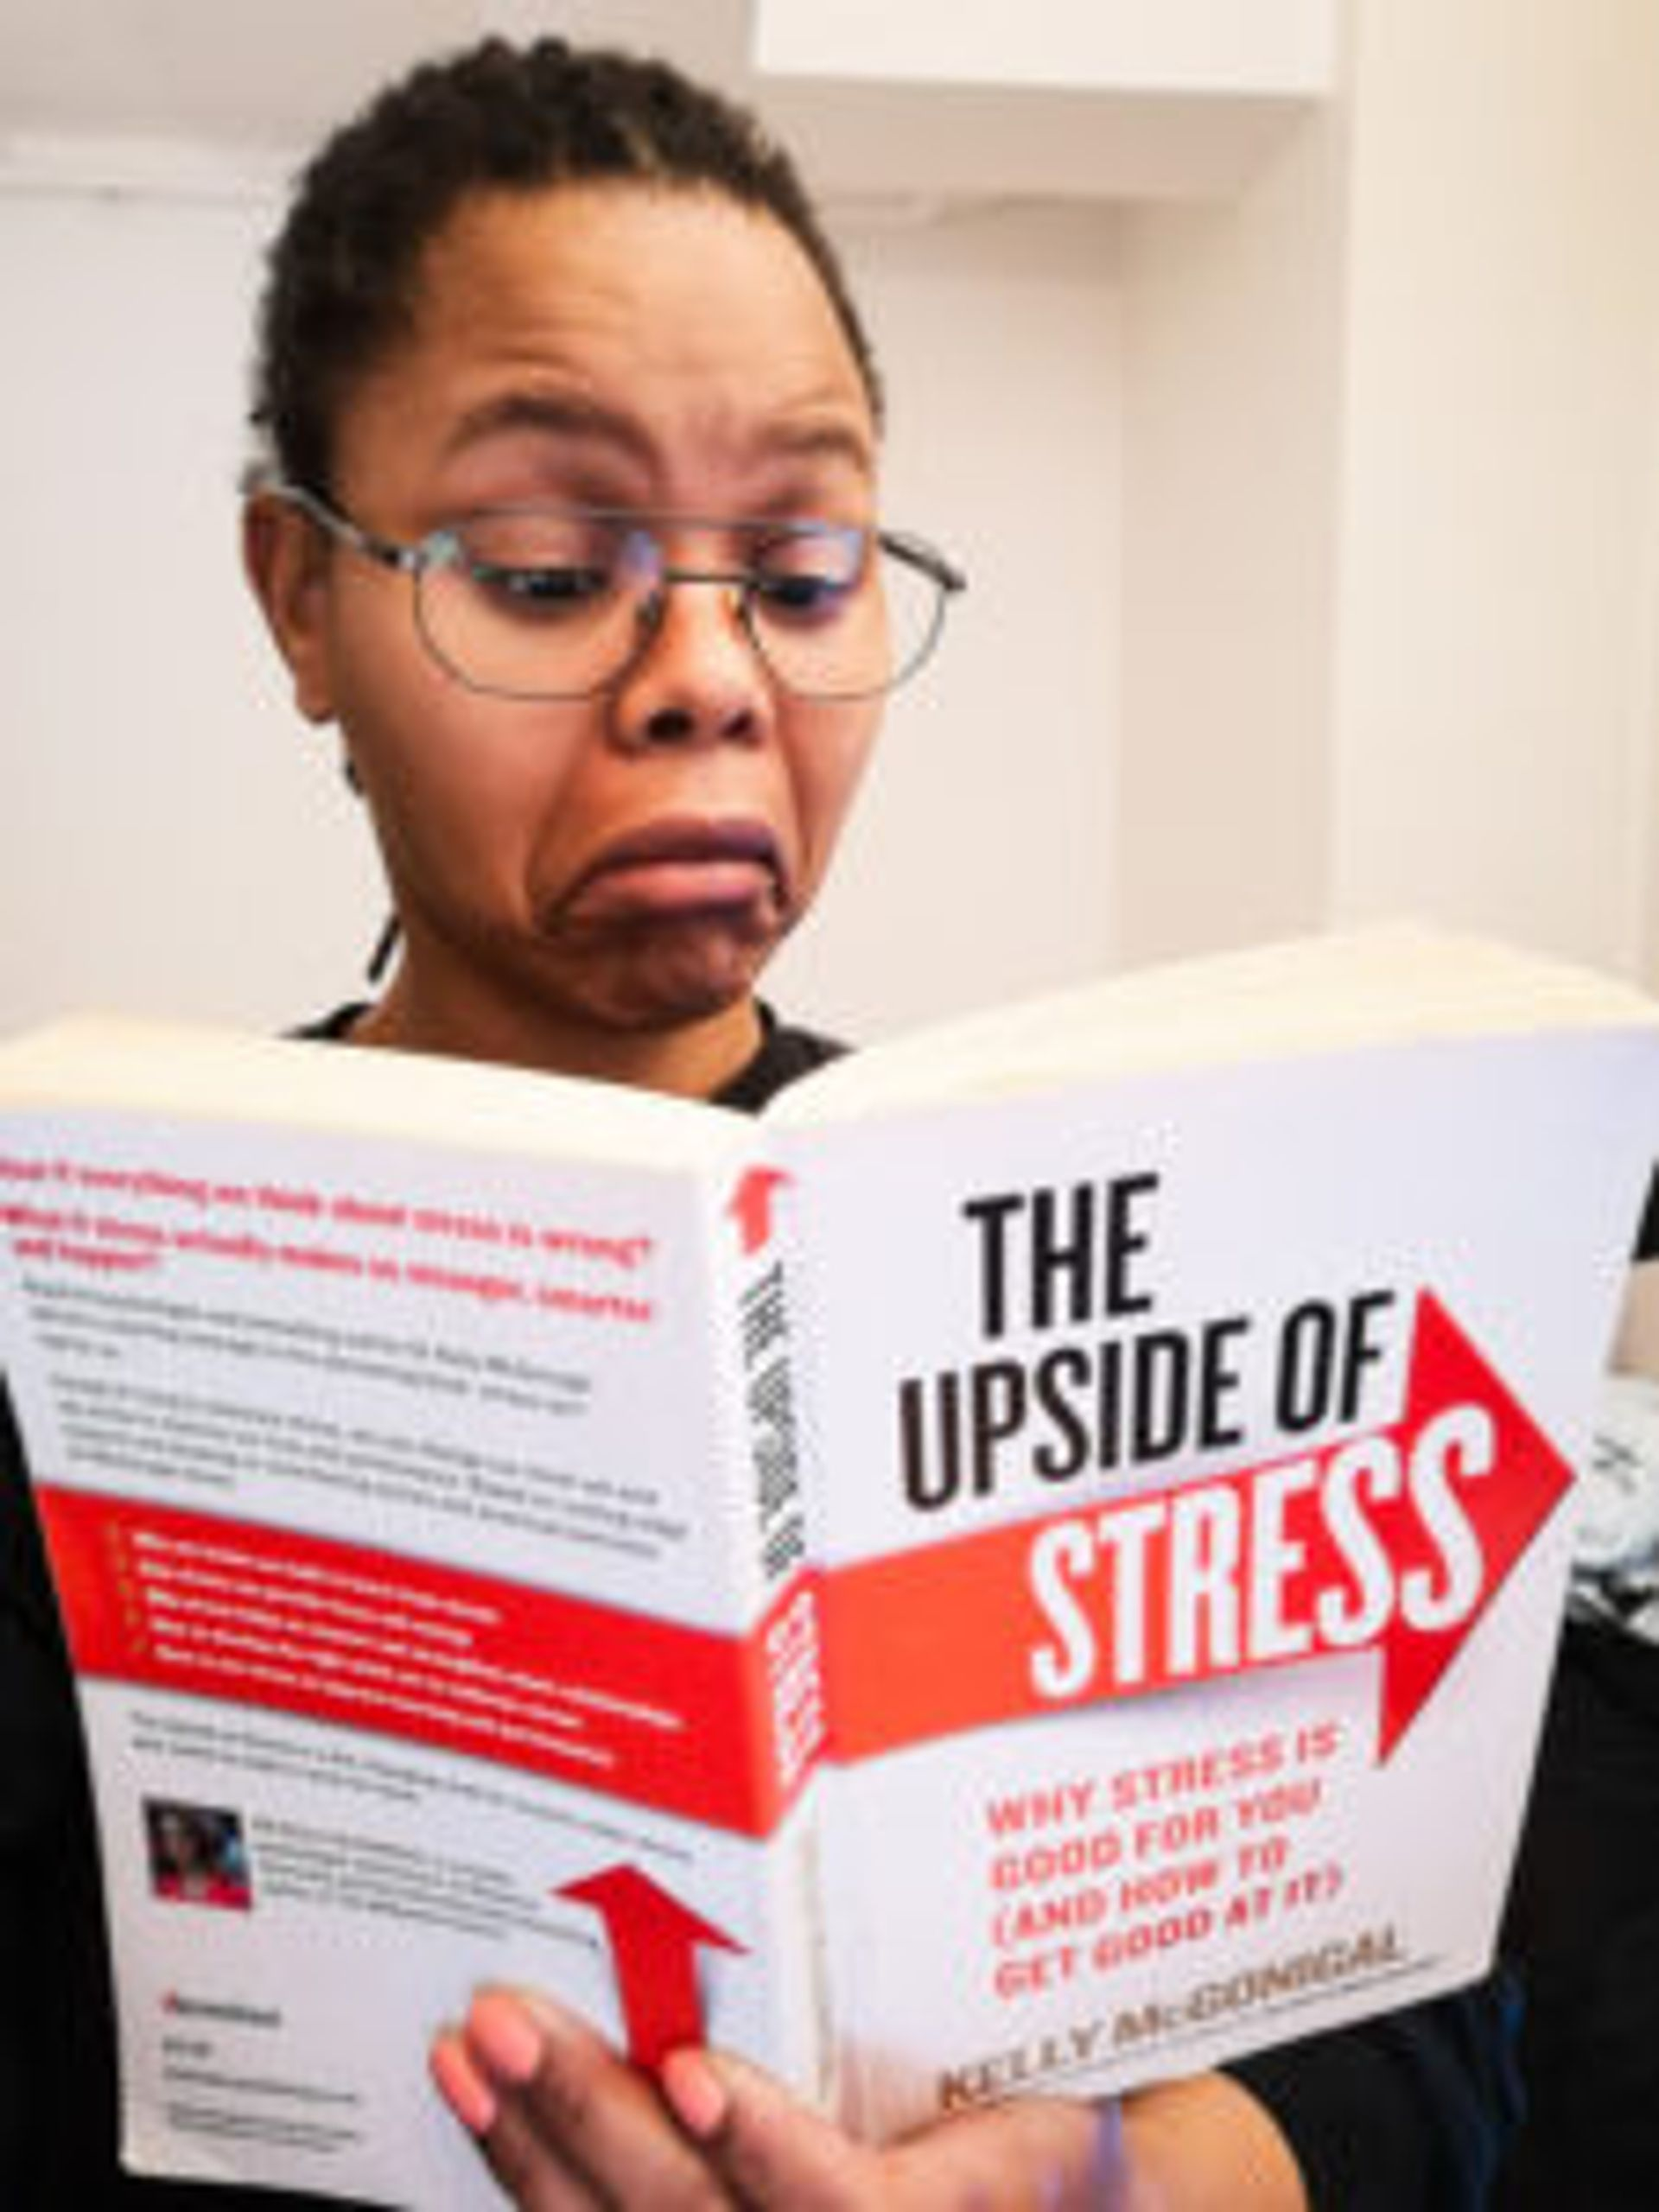 Lusanda reading the book, 'The upside of stress'.